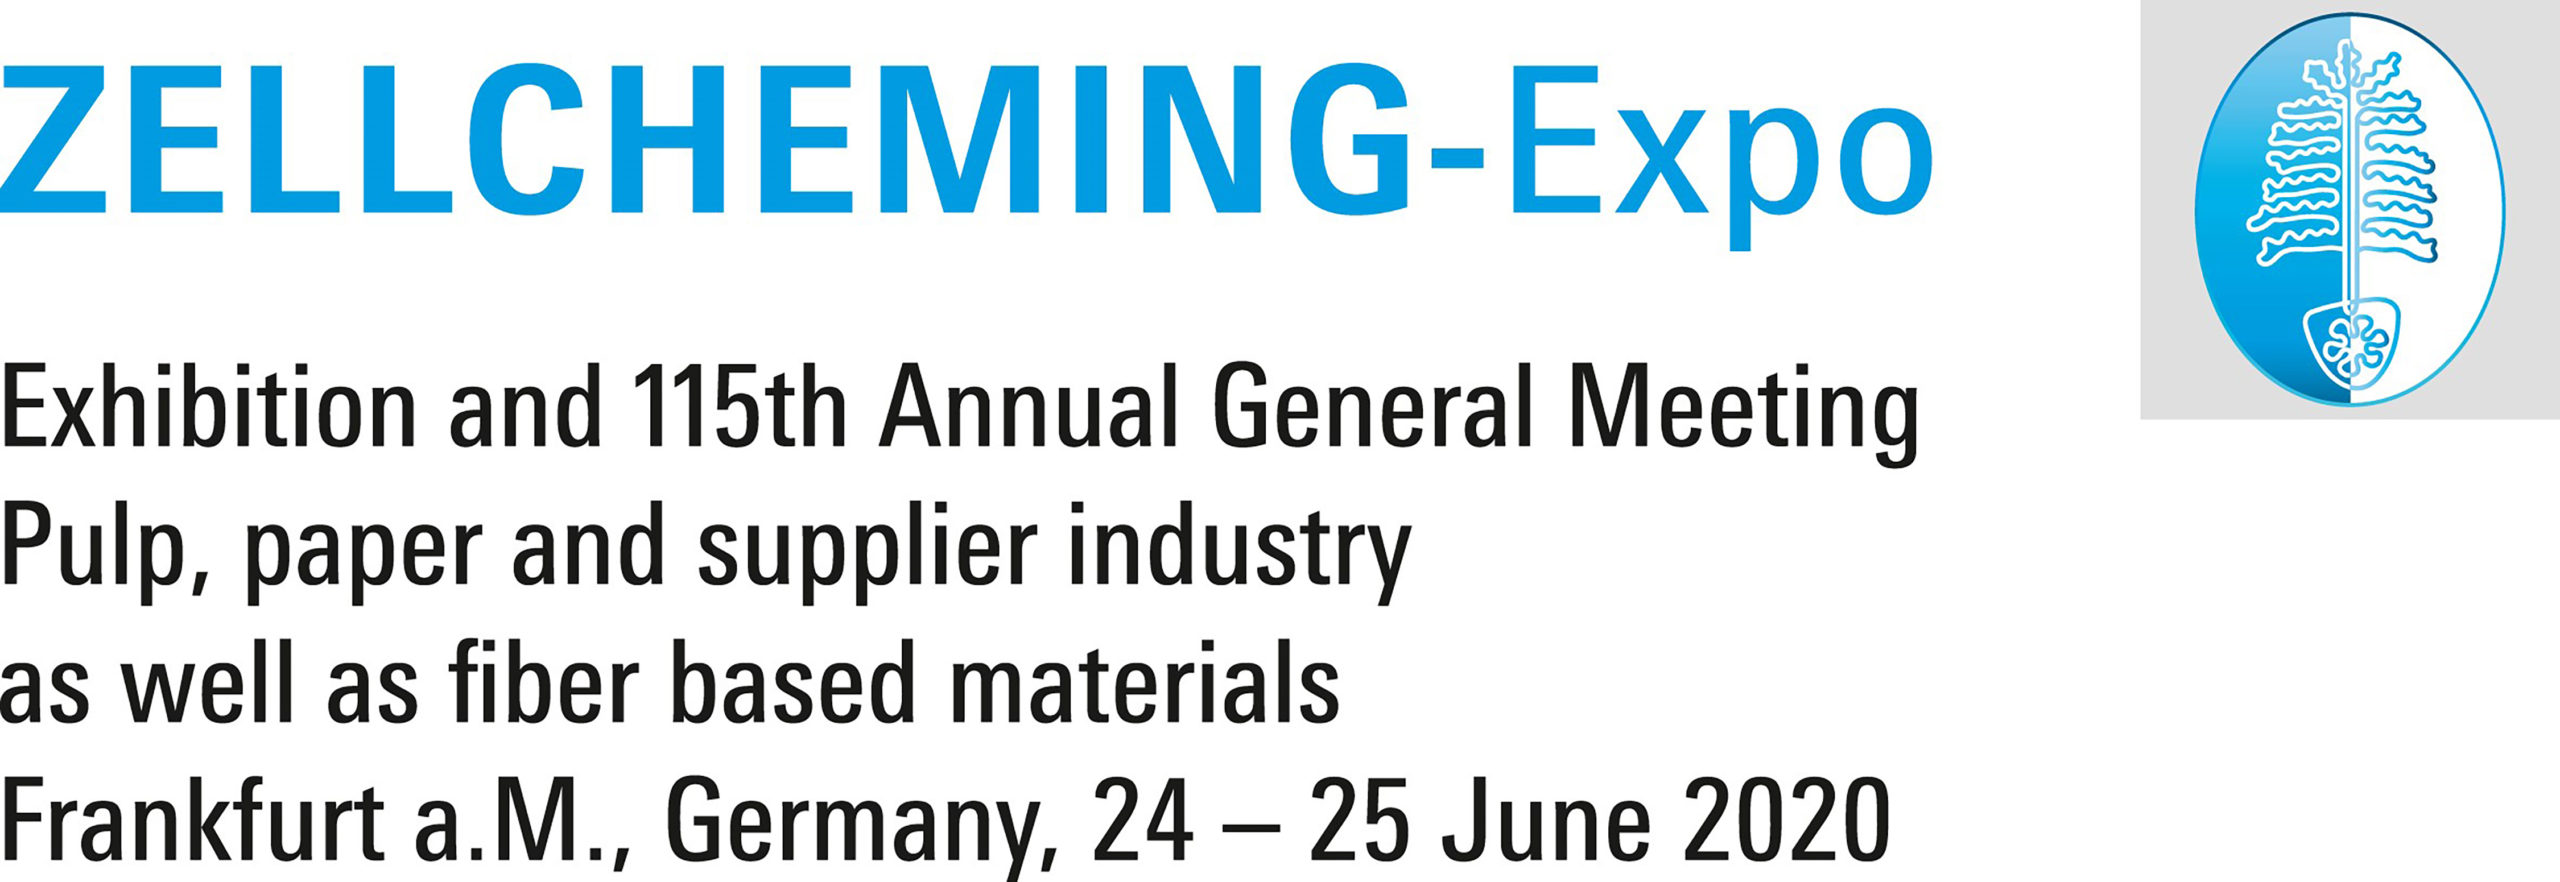 CinchSeal attends Zellcheming-Expo in Frankfurt, Germany on June 24 - 26. 2020